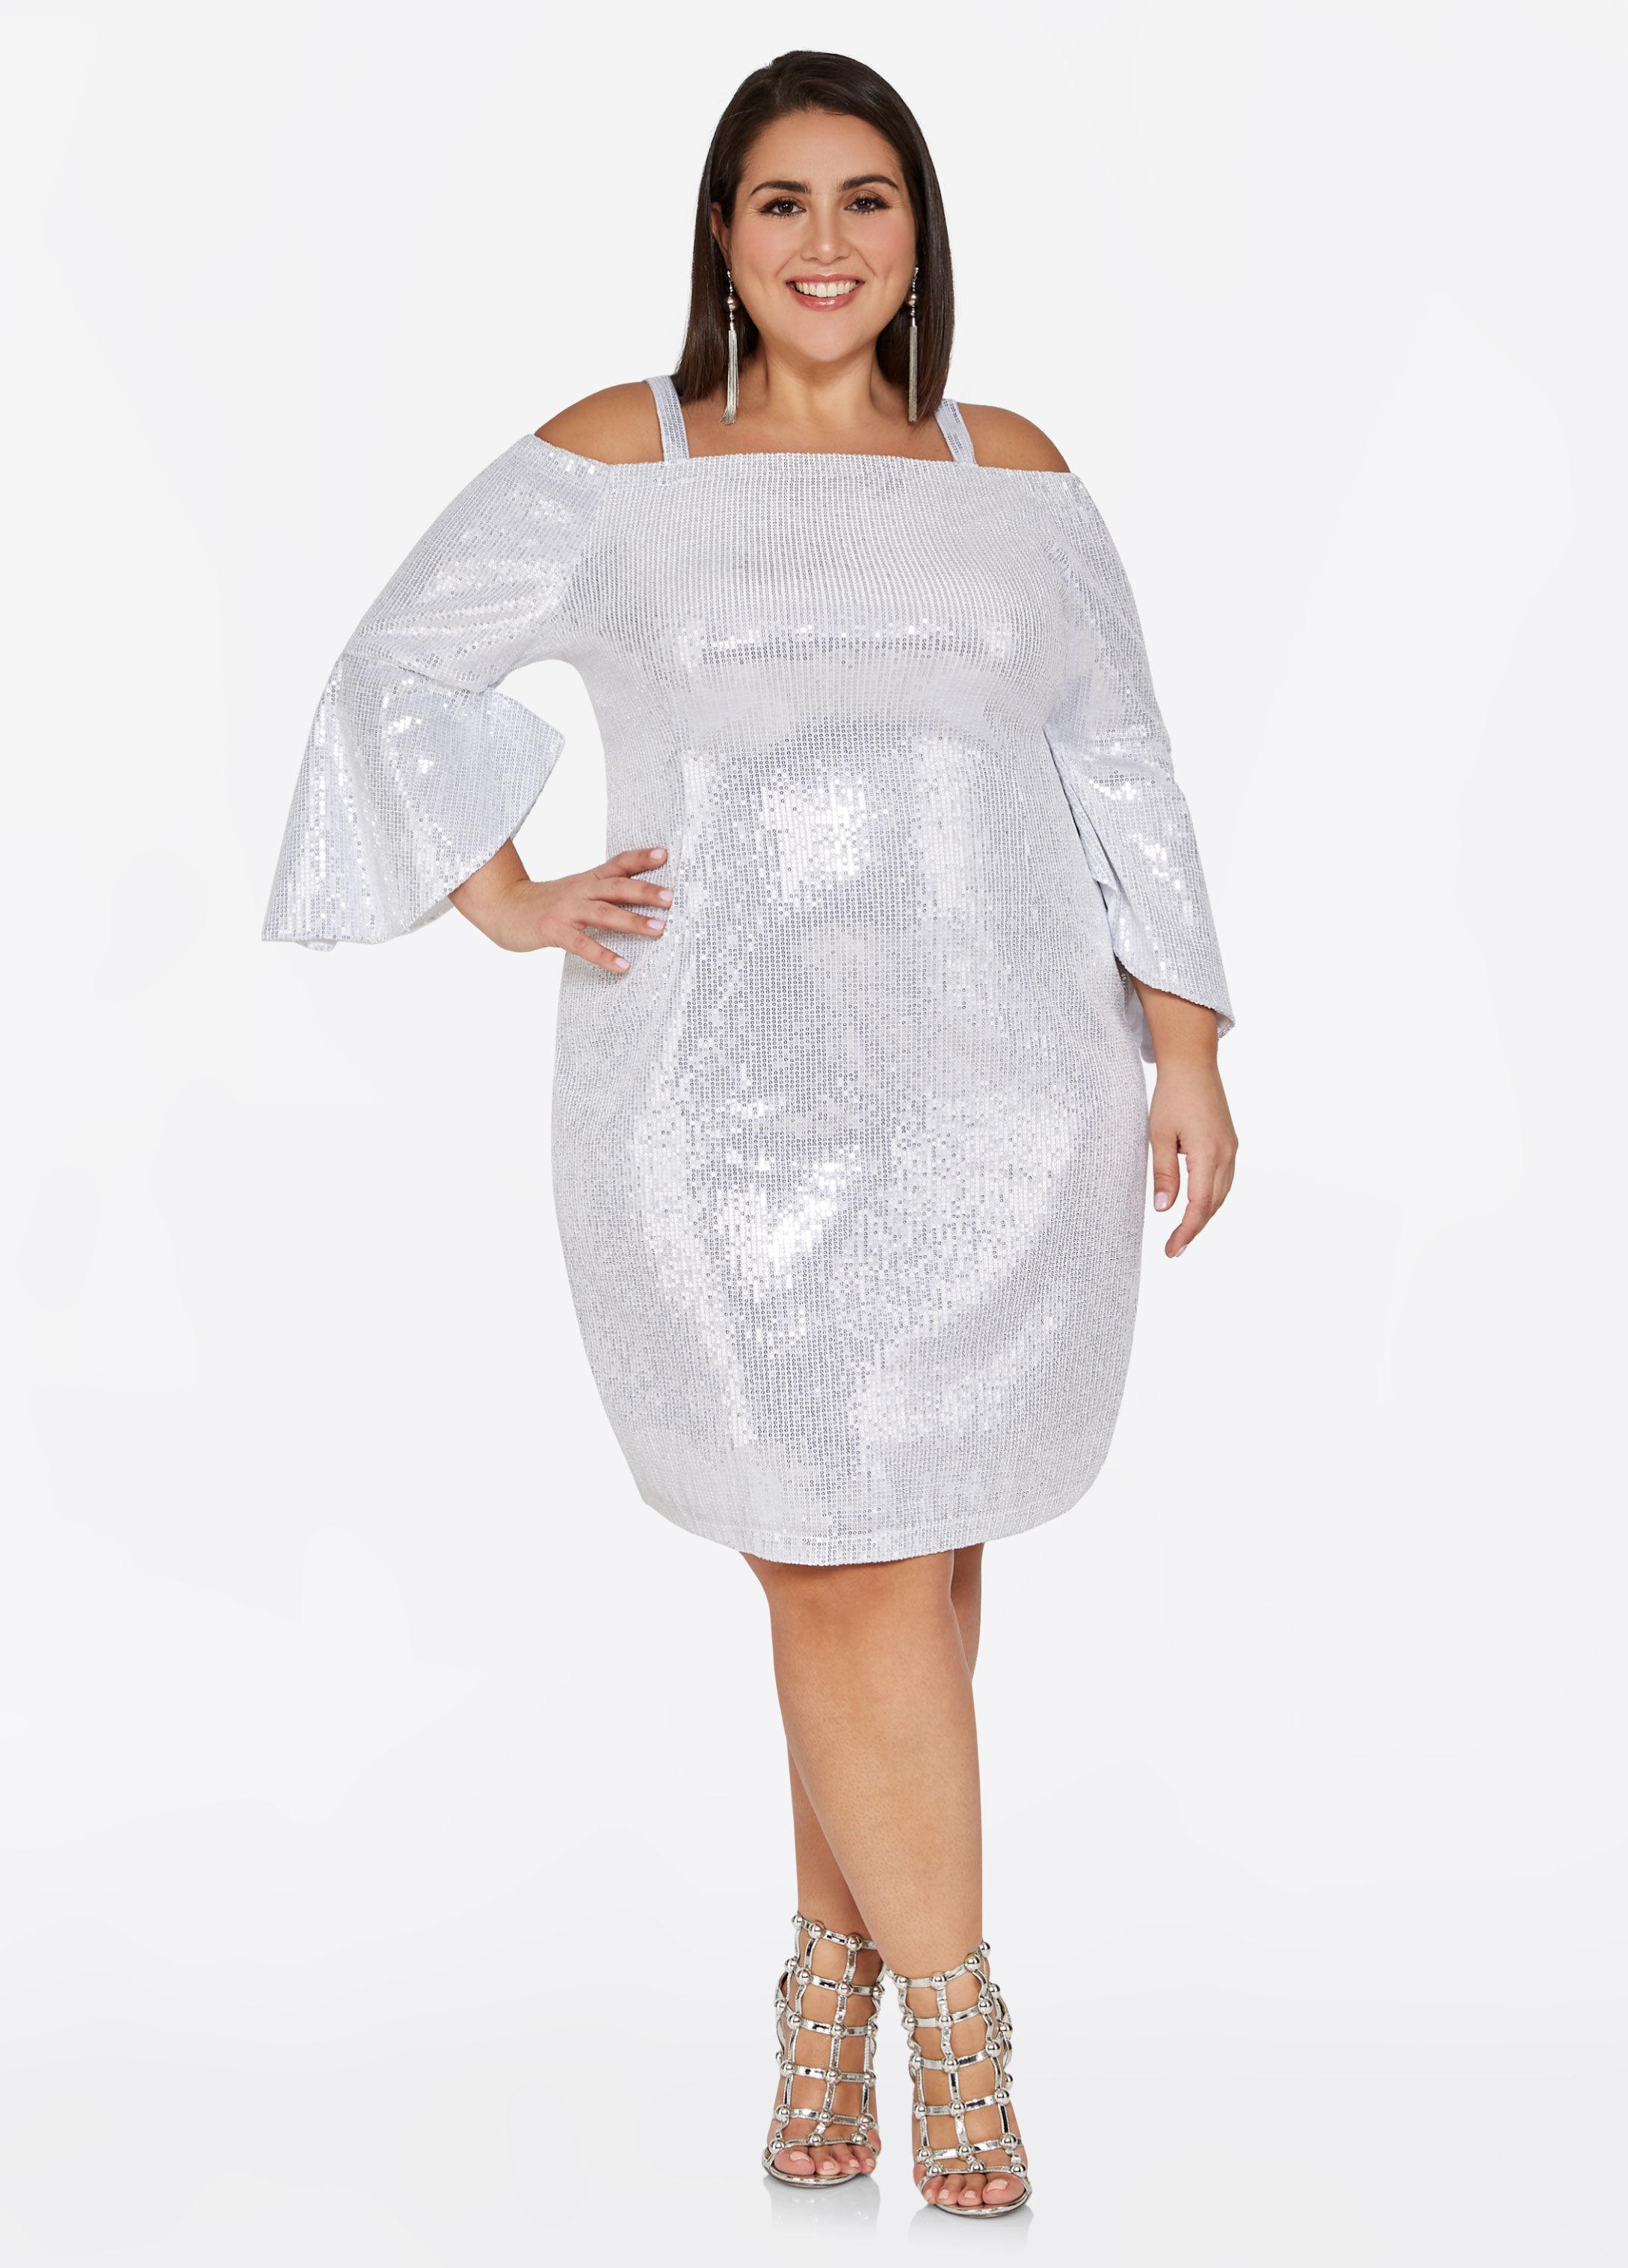 f721f215c3f Gallery. Previously sold at  Ashley Stewart · Women s White Cocktail Dresses